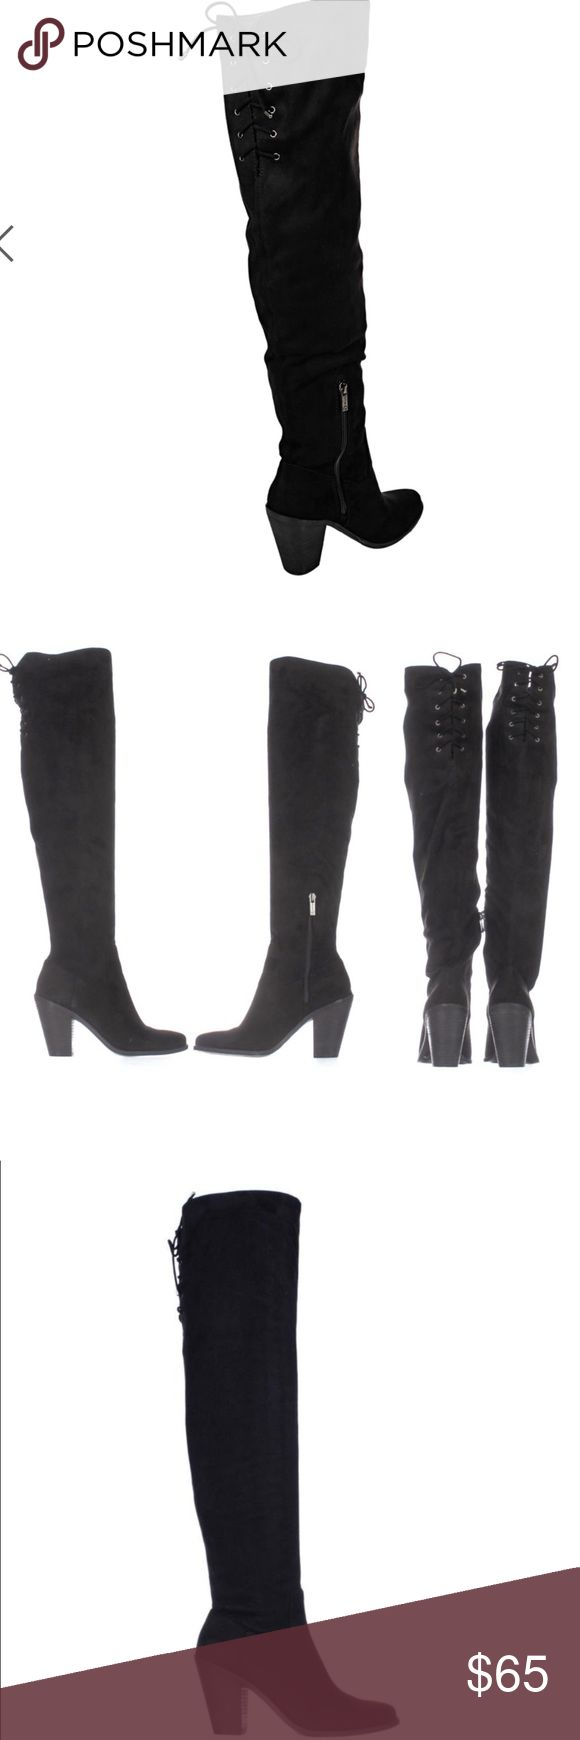 """Jessica Simpson Over The Knee Boots •• NEVER WORN•• In perfect condition with no scuffs or marks••  • Round toe over-the-knee boot • Inside zip closure • Stacked block heel • Lace-up detail at the back • Cushioned insole • Traction outsole • Fabric: Suede • Heel height: 3.75"""" • Shaft height: 18.25"""" • Width: medium • Care: wipe with soft, damp cloth • PRICE FIRM in regards to major discount Jessica Simpson Shoes Over the Knee Boots"""